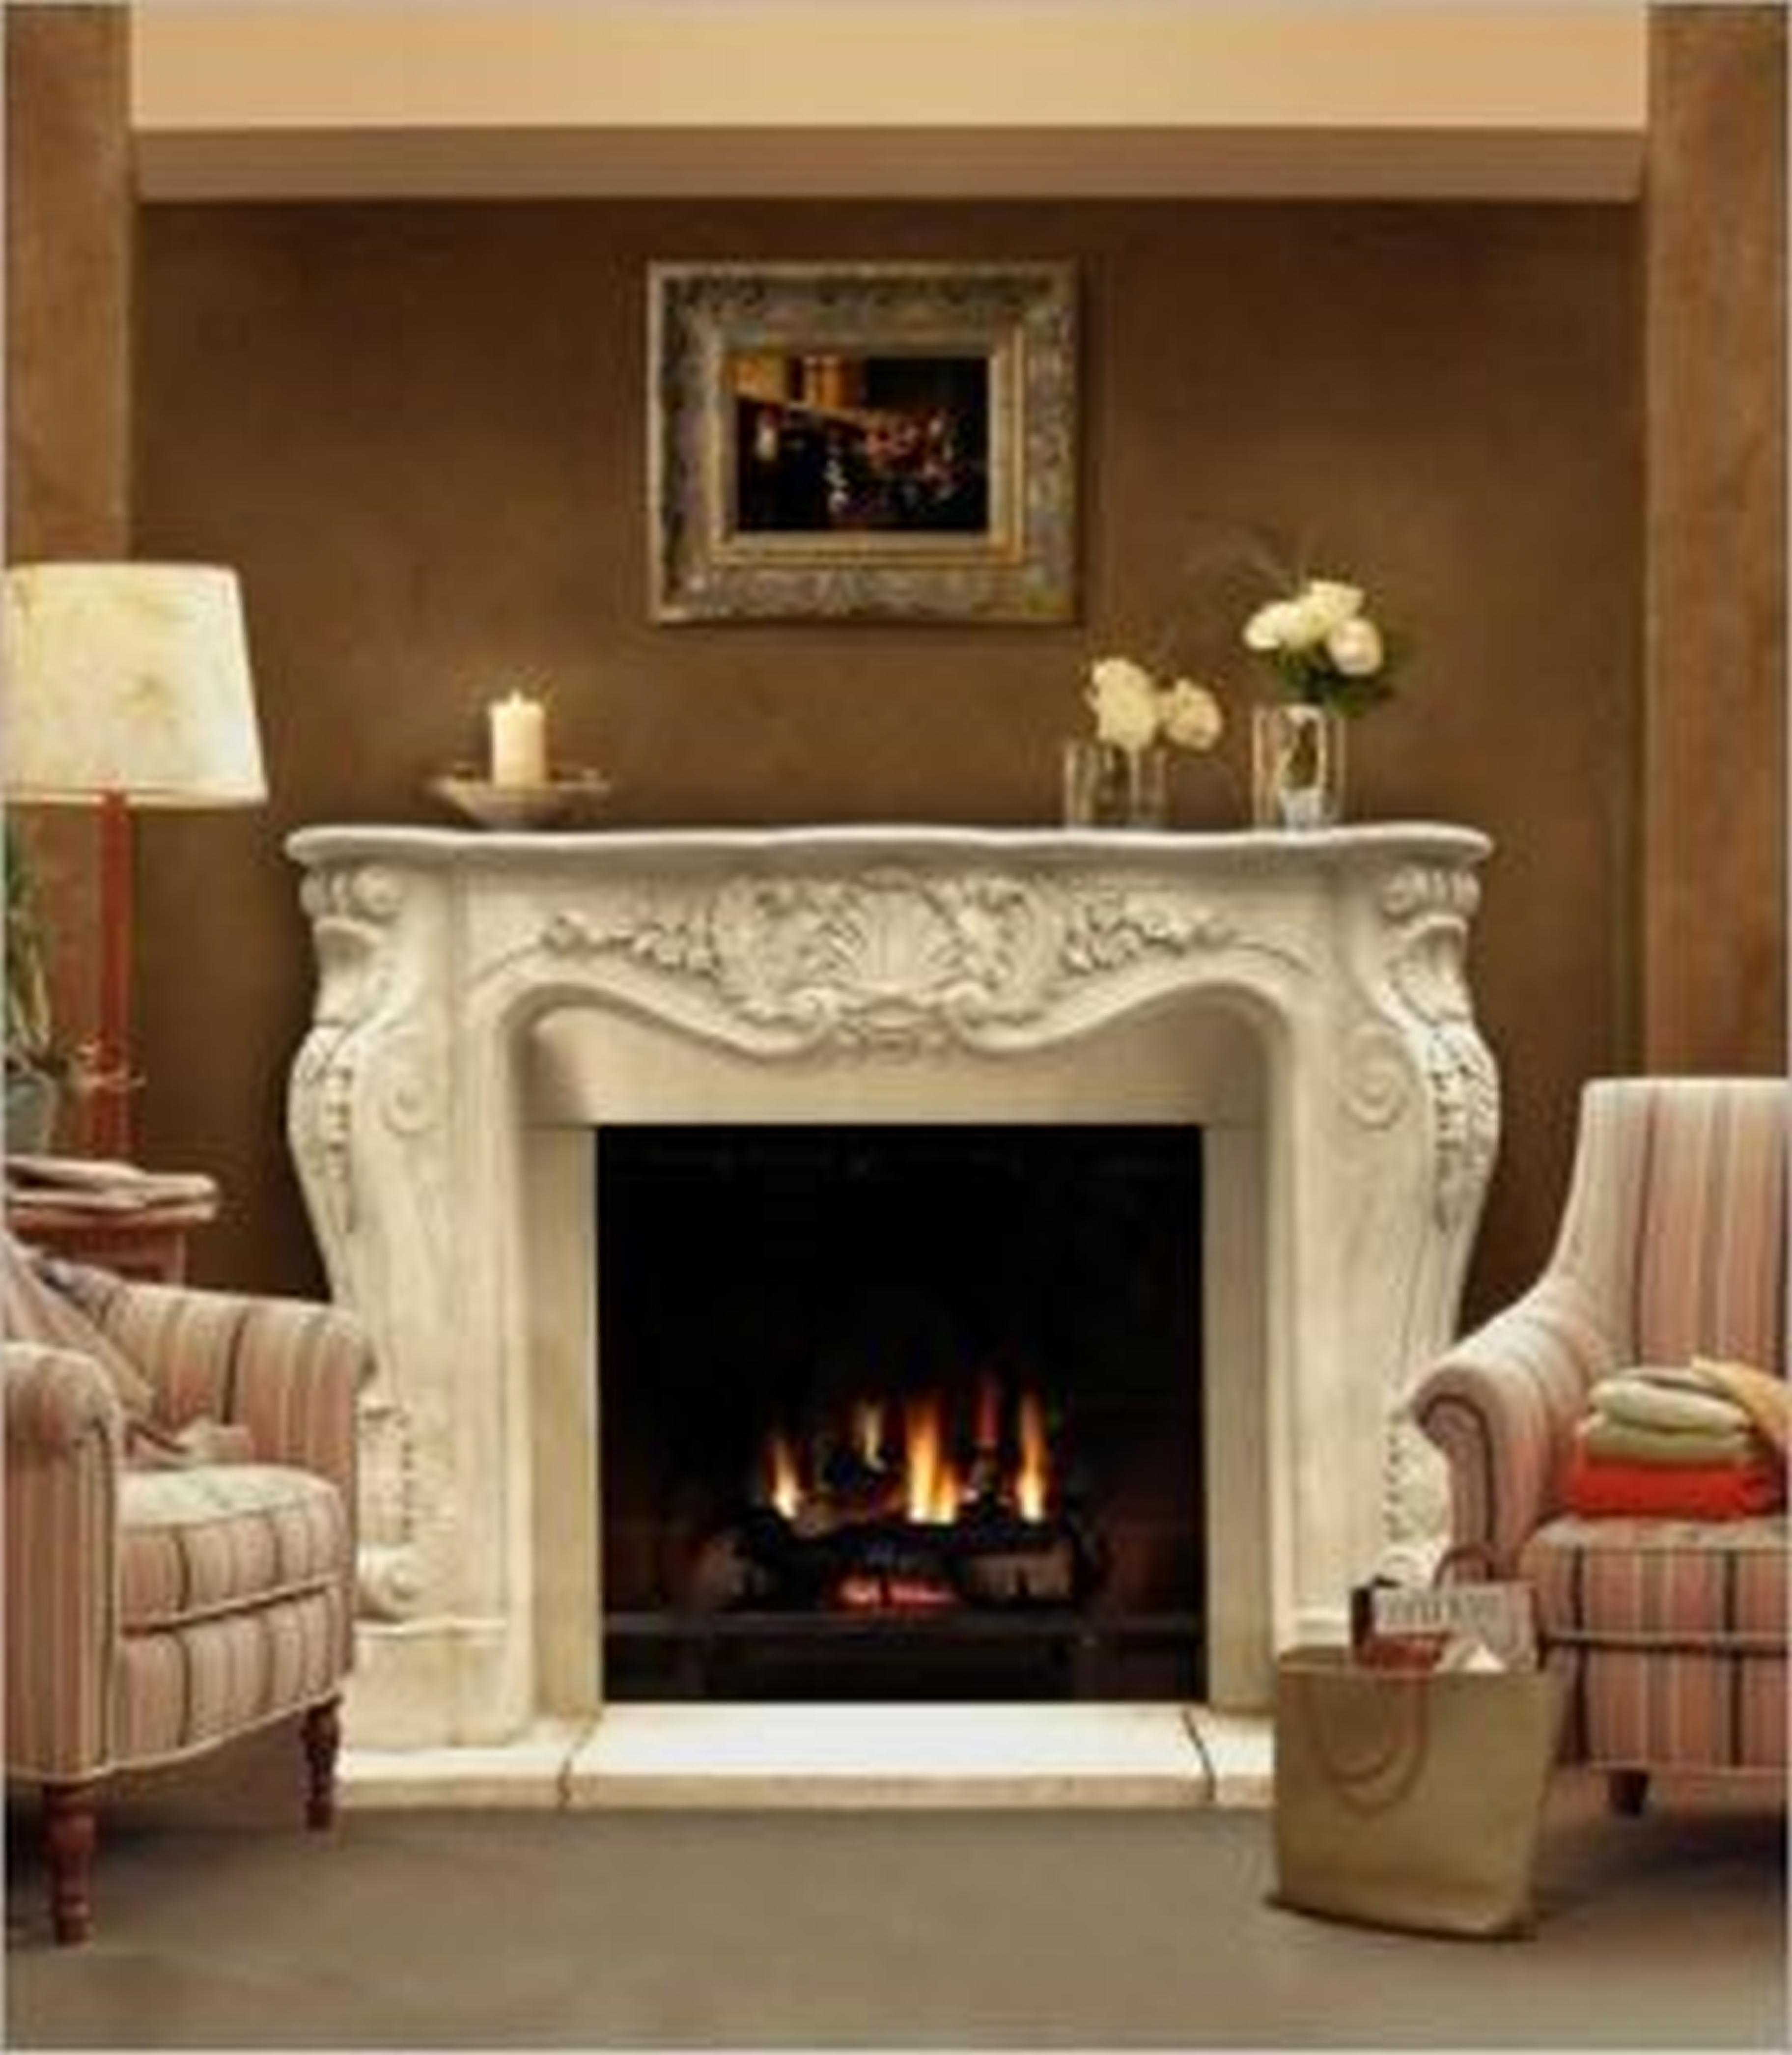 How To Clean Limestone Fireplace Surround